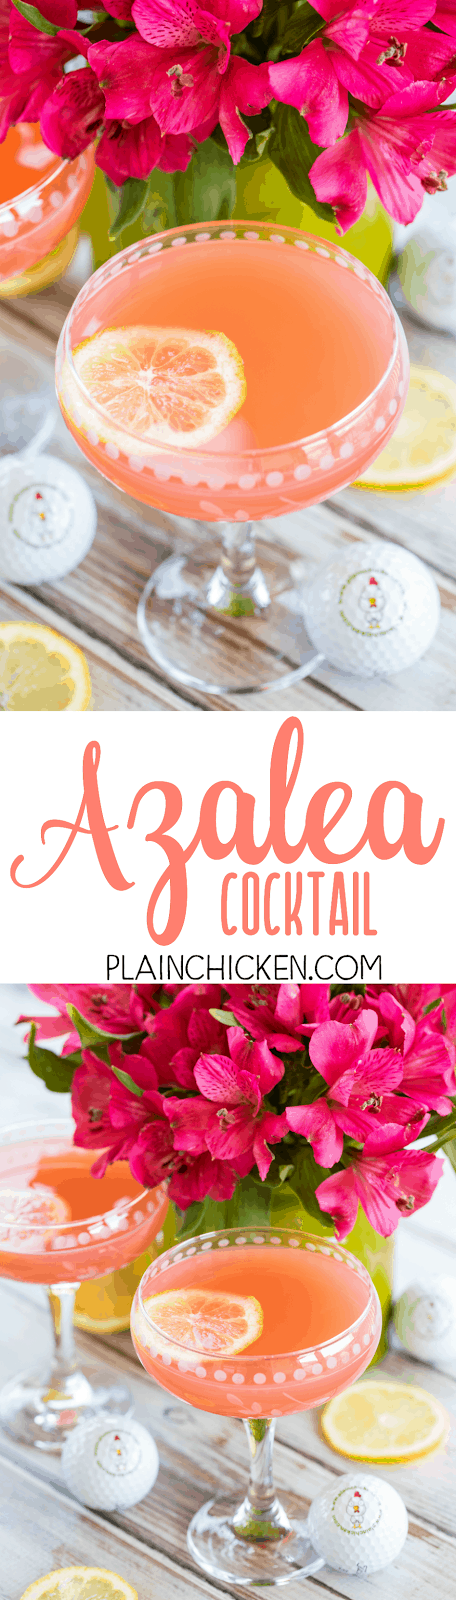 Azalea Cocktail - the signature cocktail of the Masters golf tournament! SO light and refreshing! Perfect for watching the golf tournament and spring/summer parties. Lemon juice, pineapple juice, vodka and grenadine. Can make a pitcher or a single cocktail. This is our signature cocktail recipe! SO good!!!